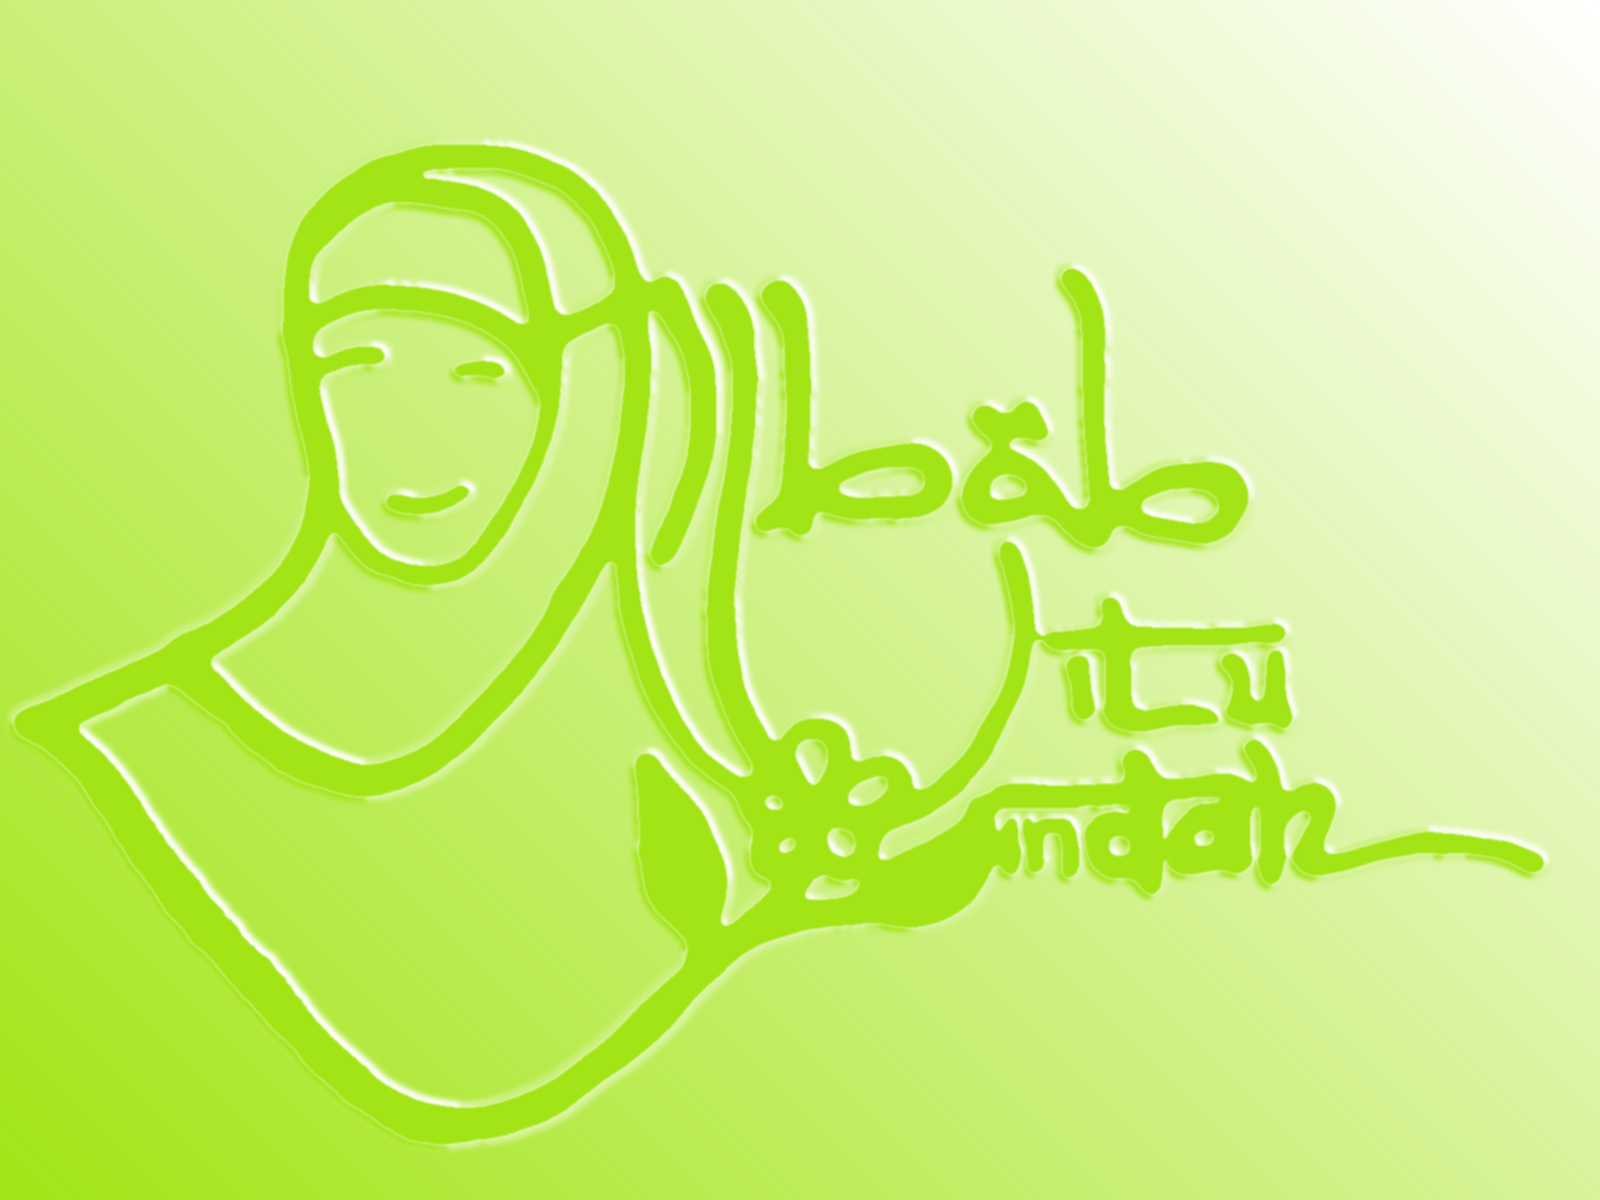 THELITTLE GIRL WITH JILBAB